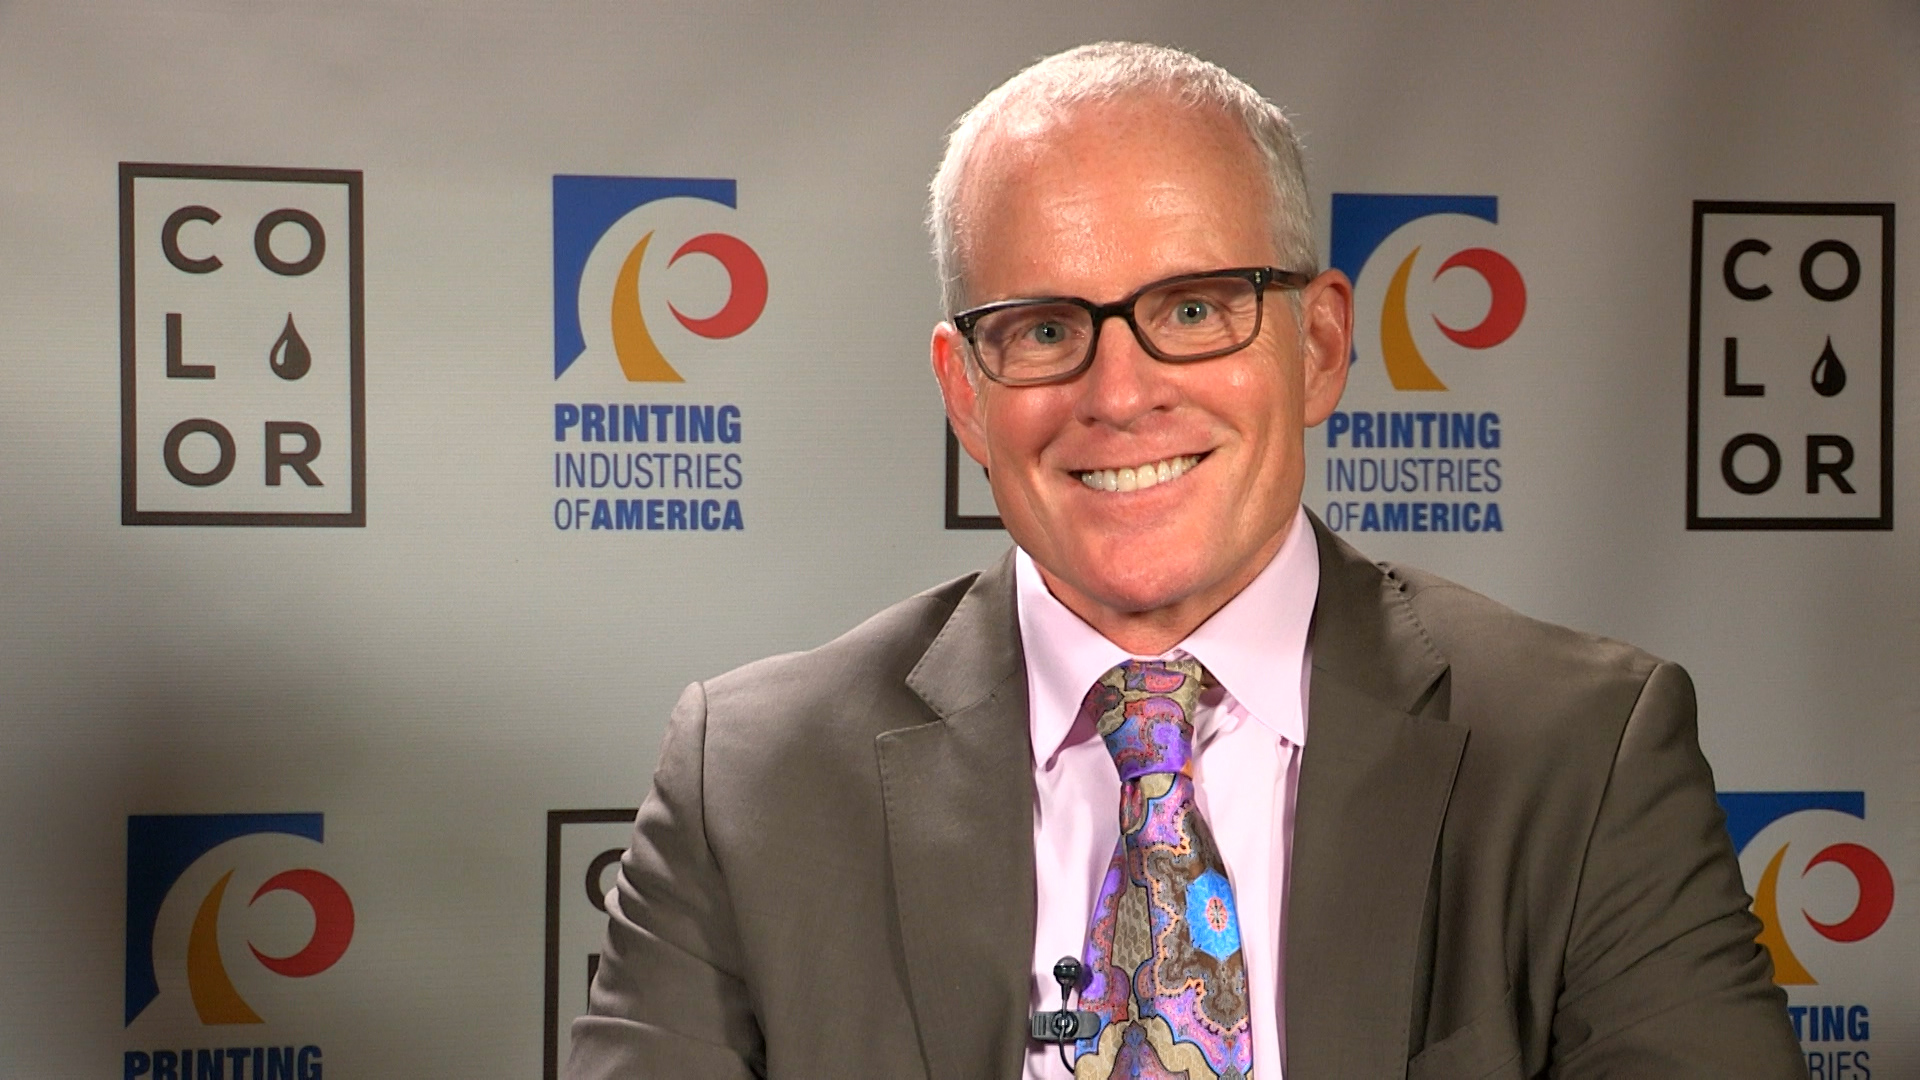 Video preview: What to Expect from the Printing Industries of America in 2017 and Beyond